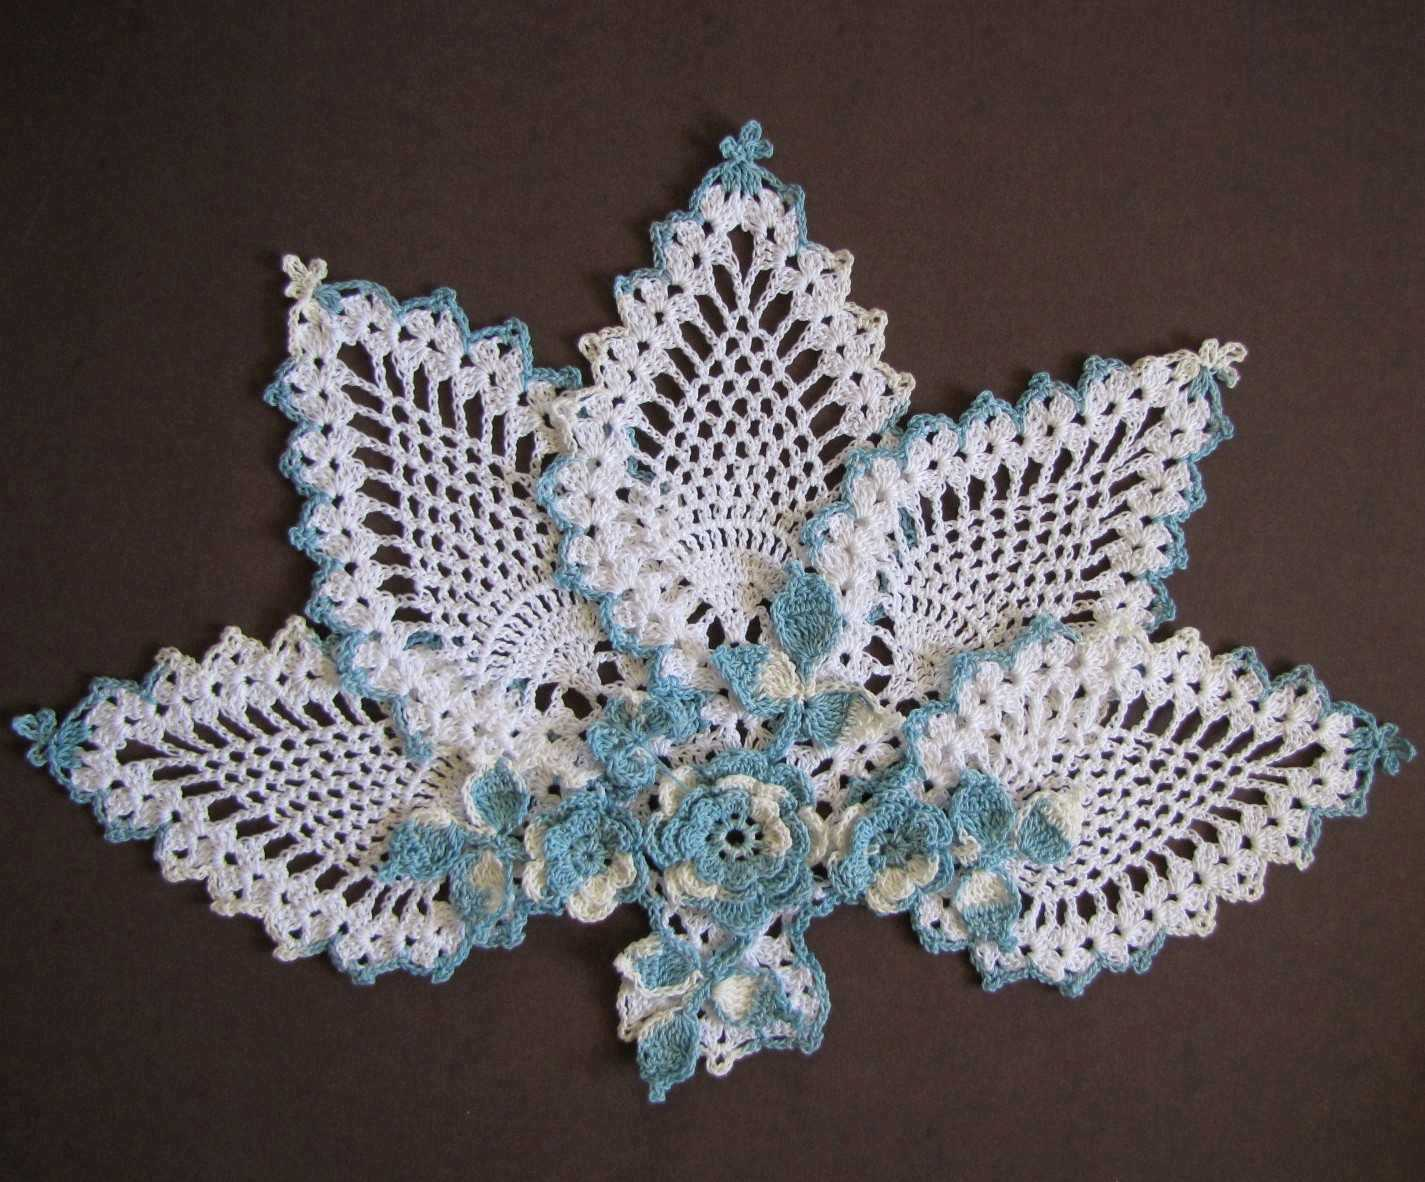 Free Crochet Patterns For Butterfly Doilies : BellaCrochet: November 2012